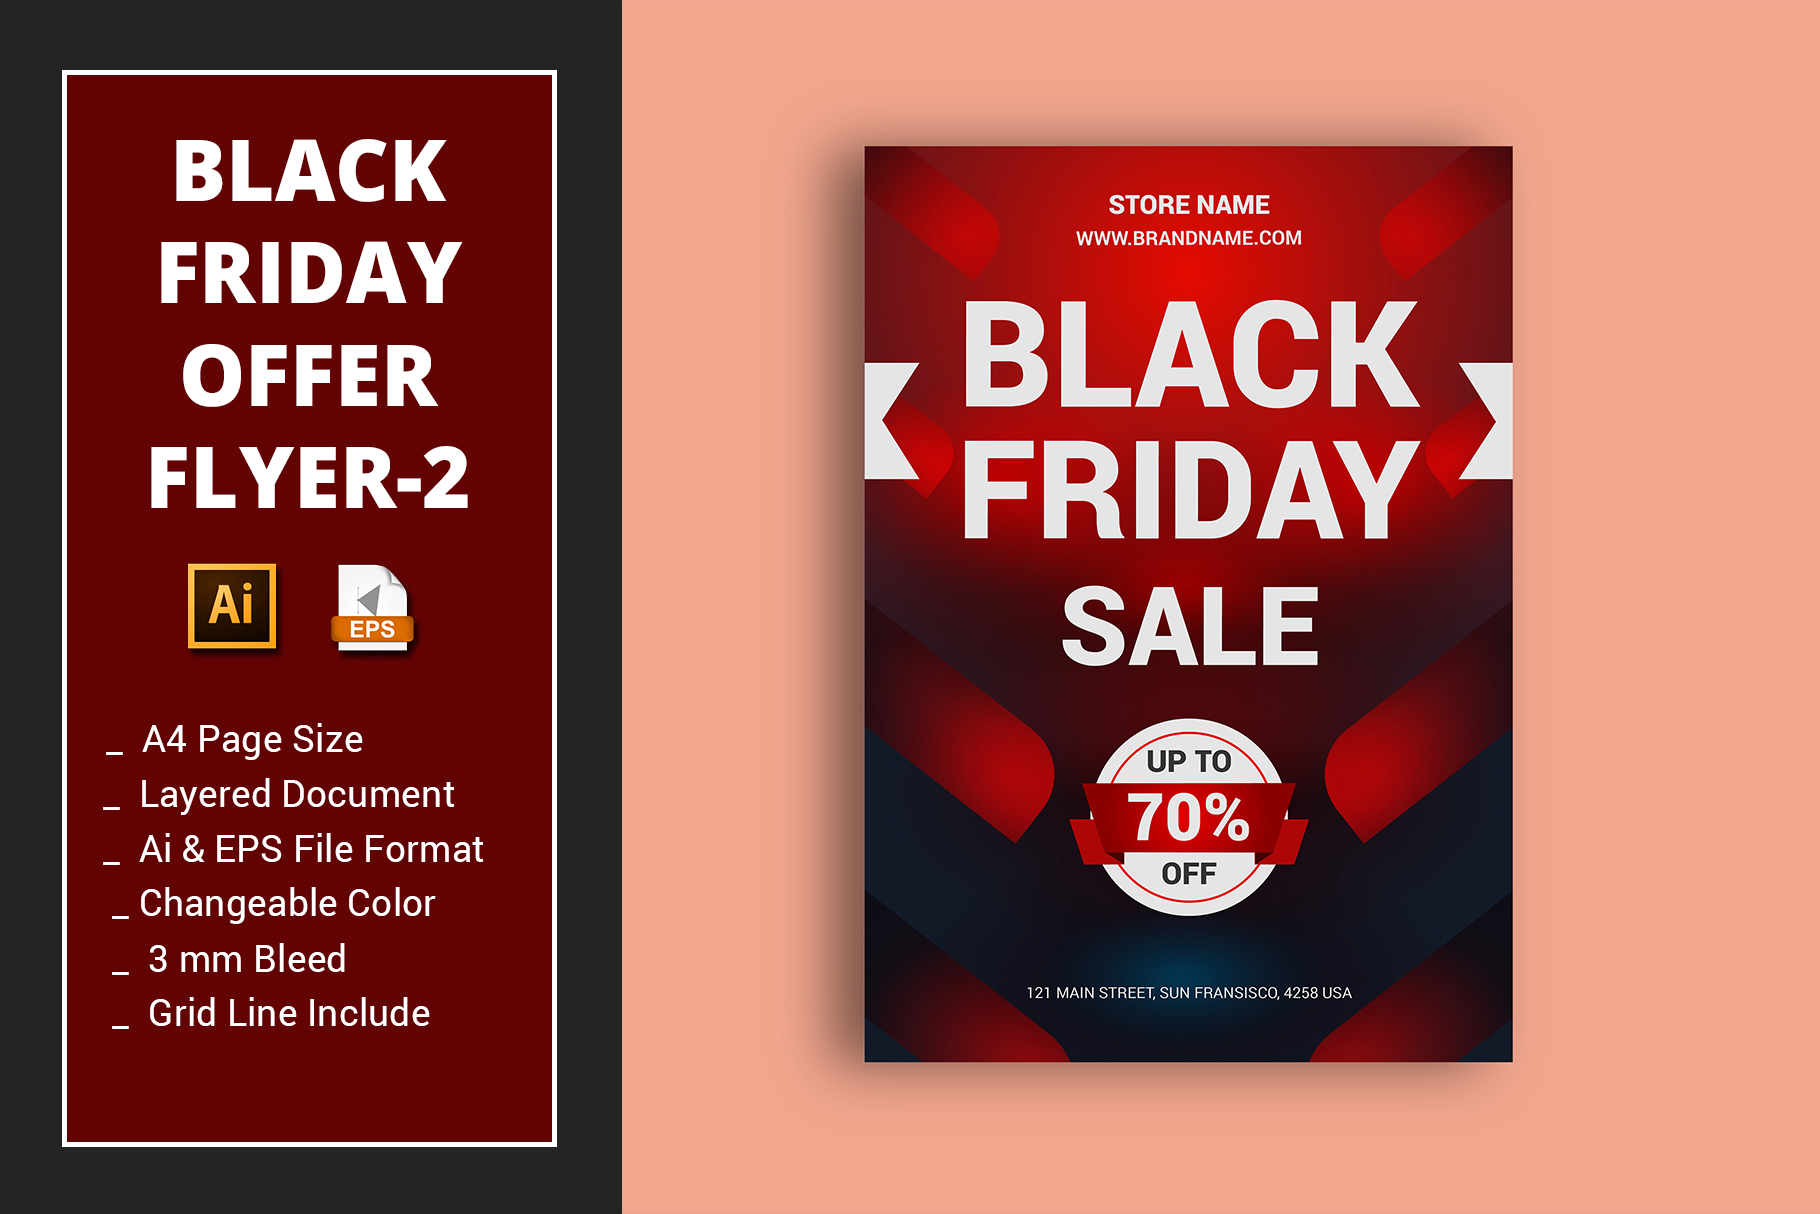 Black Friday Flyer Flyer 2 Graphic By Alimran24 Creative Fabrica